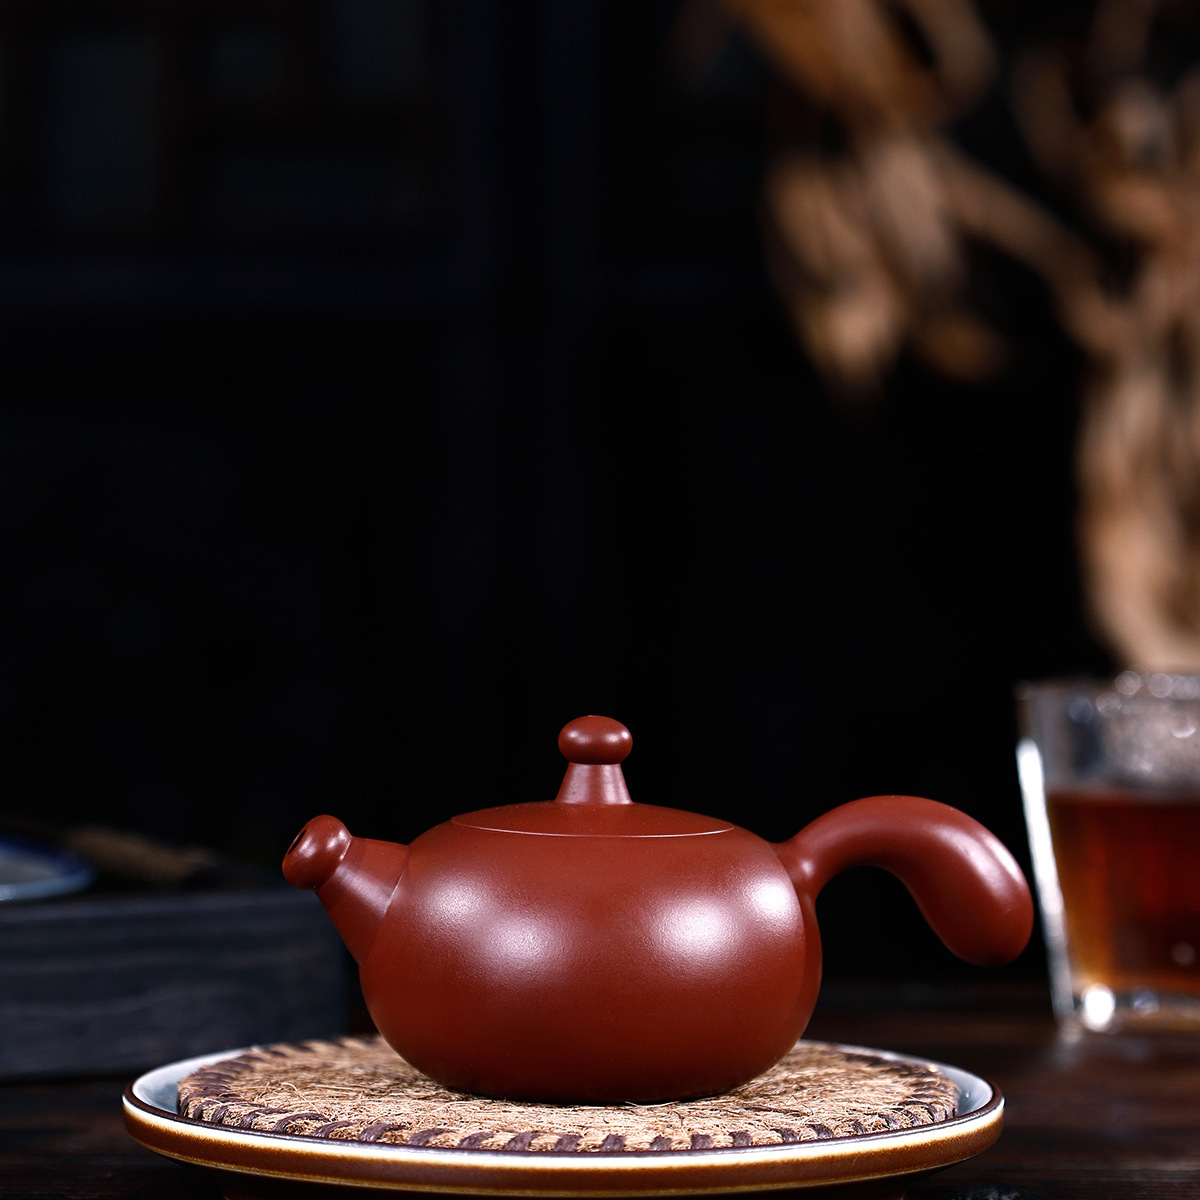 Pottery Teapot Famous Full Manual Raw Ore Bright Red Tang Feather Pot In Gouhongdao Kungfu Online Teapot Tea Set Suit GiftPottery Teapot Famous Full Manual Raw Ore Bright Red Tang Feather Pot In Gouhongdao Kungfu Online Teapot Tea Set Suit Gift